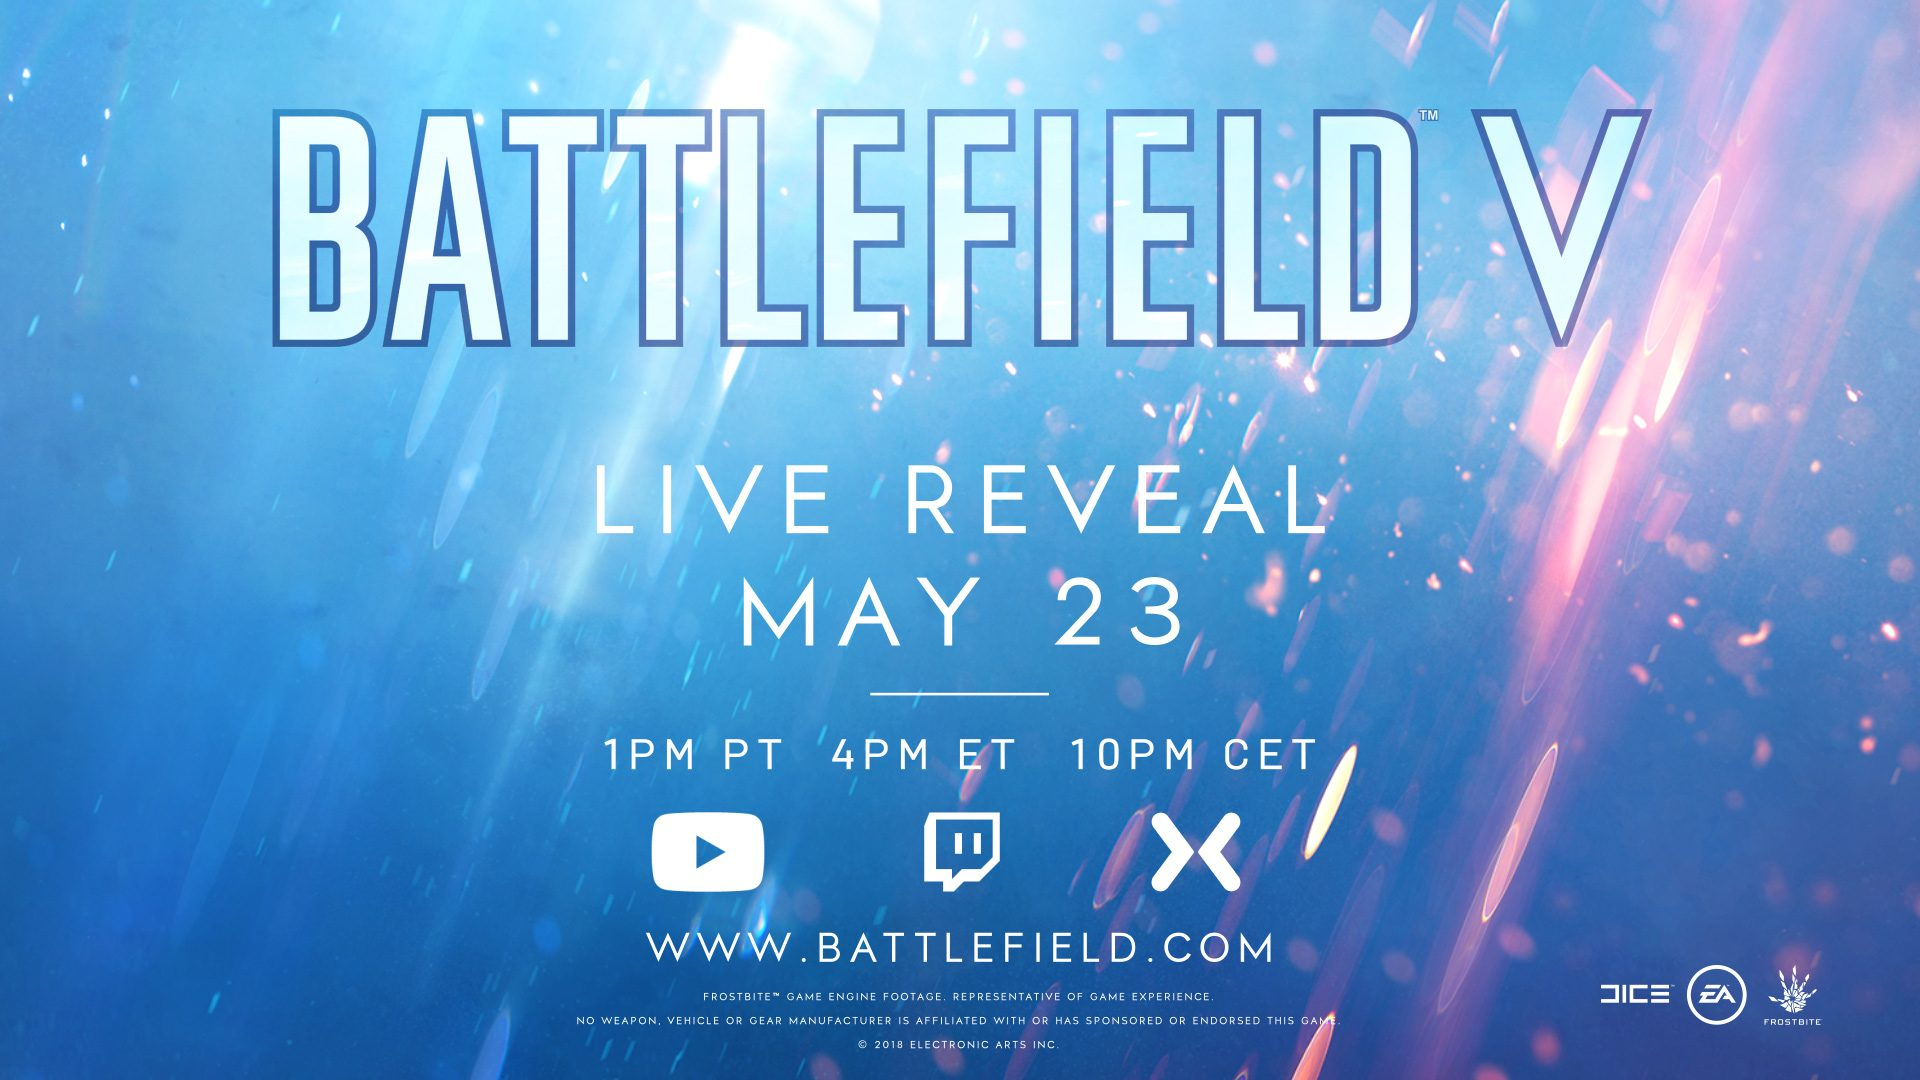 How to Watch the Battlefield V Live Reveal